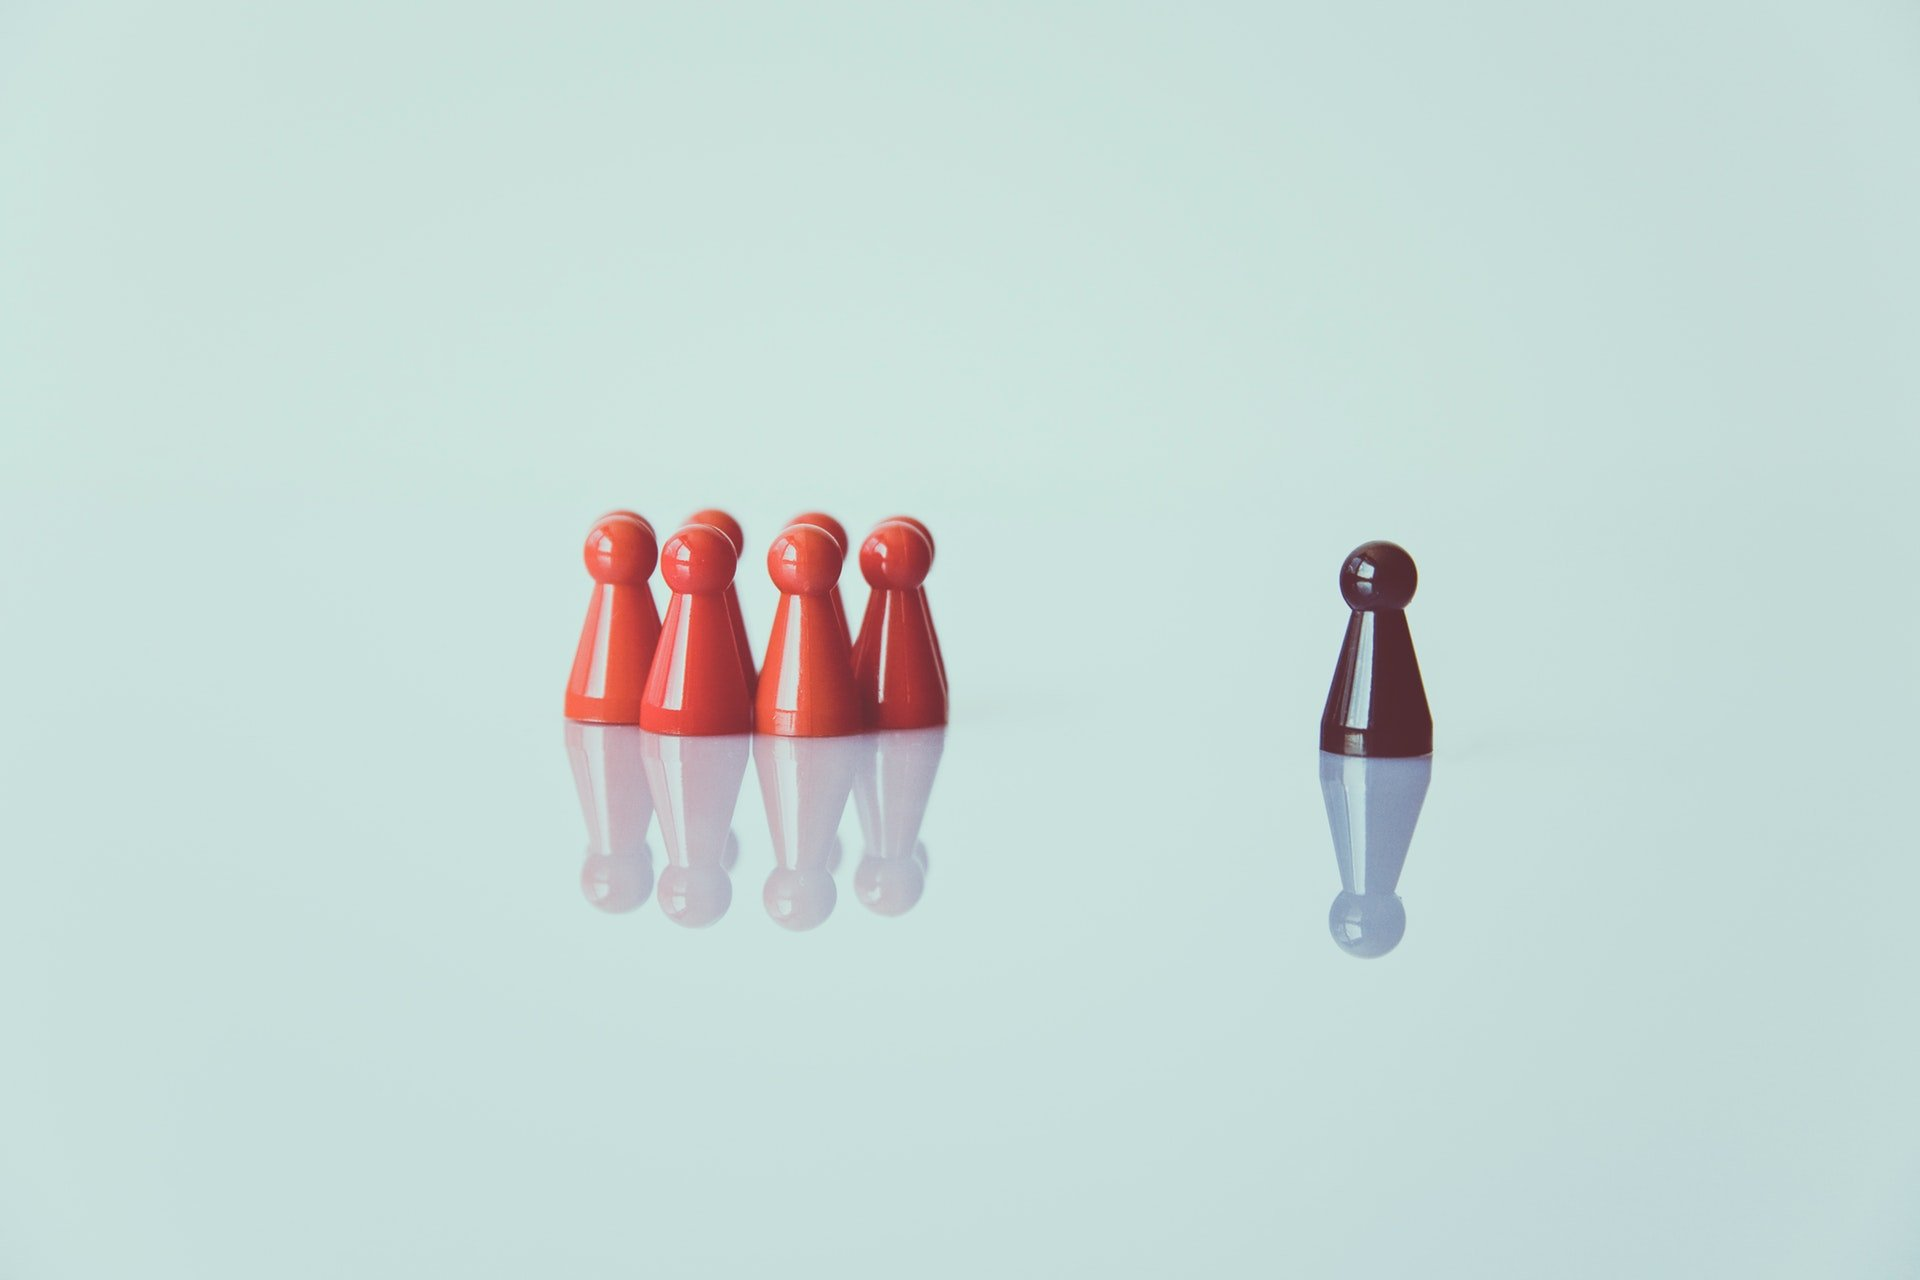 orange-and-and-brown-chess-pieces-1679618